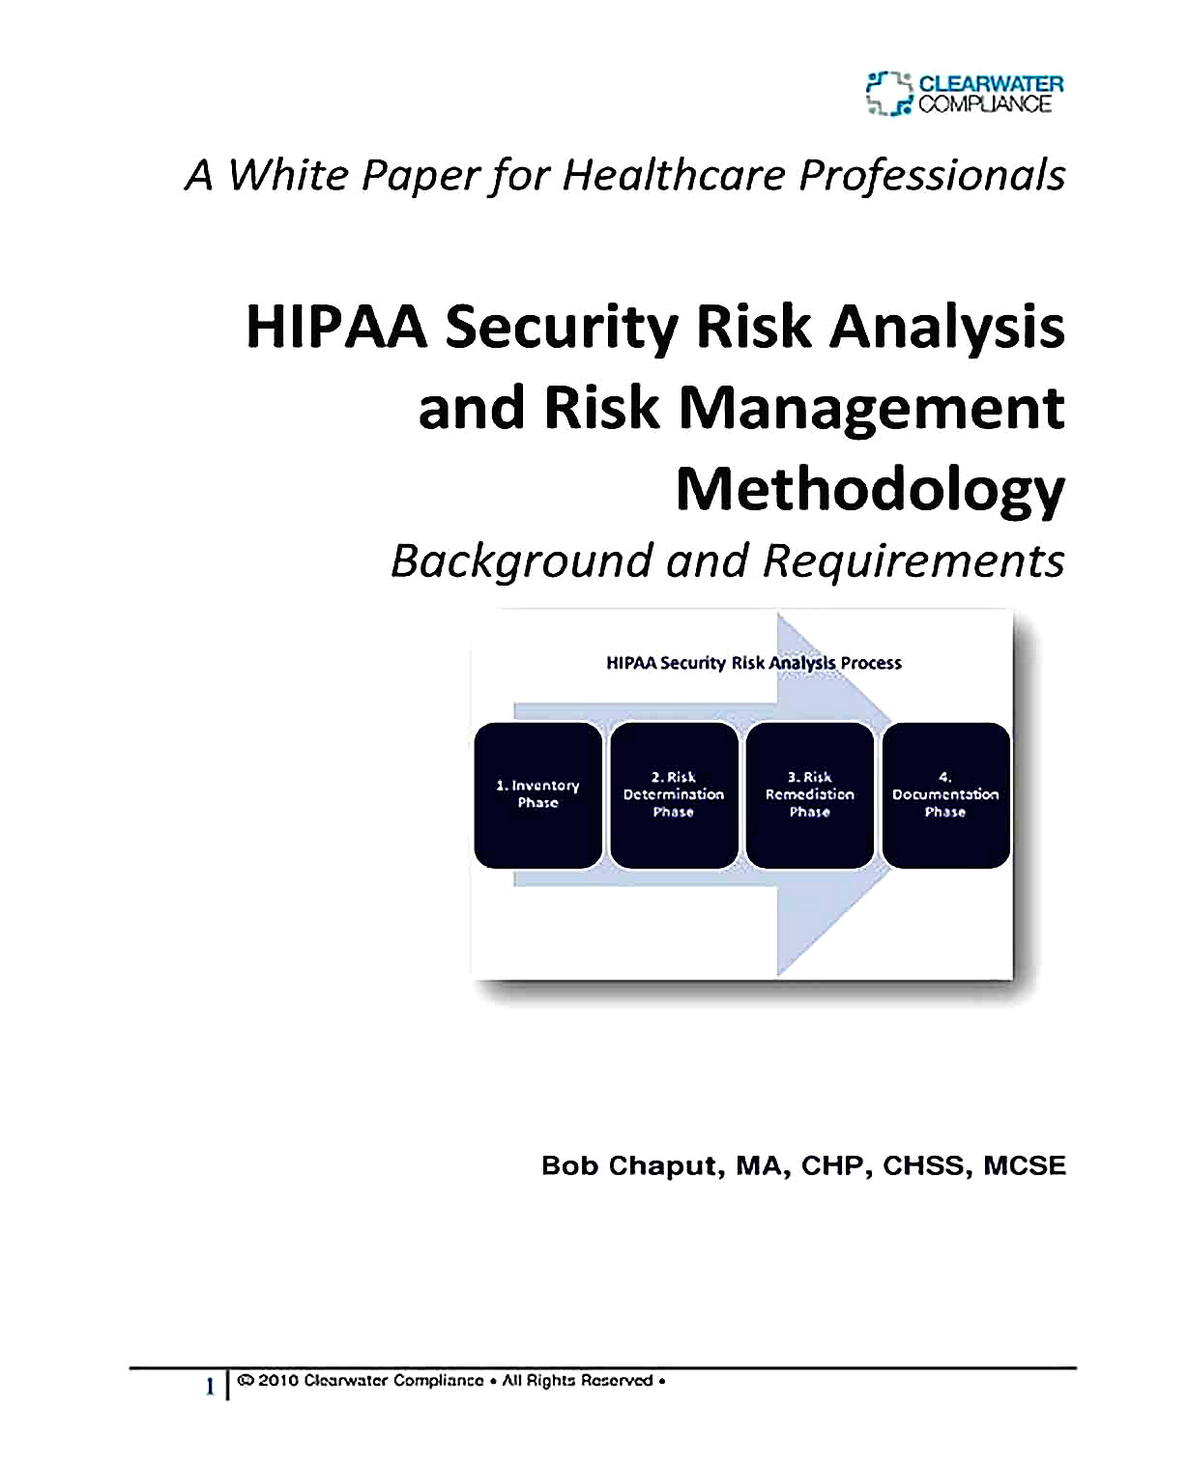 Templates for Simple HIPAA Security Risk Analysis 01 Sample